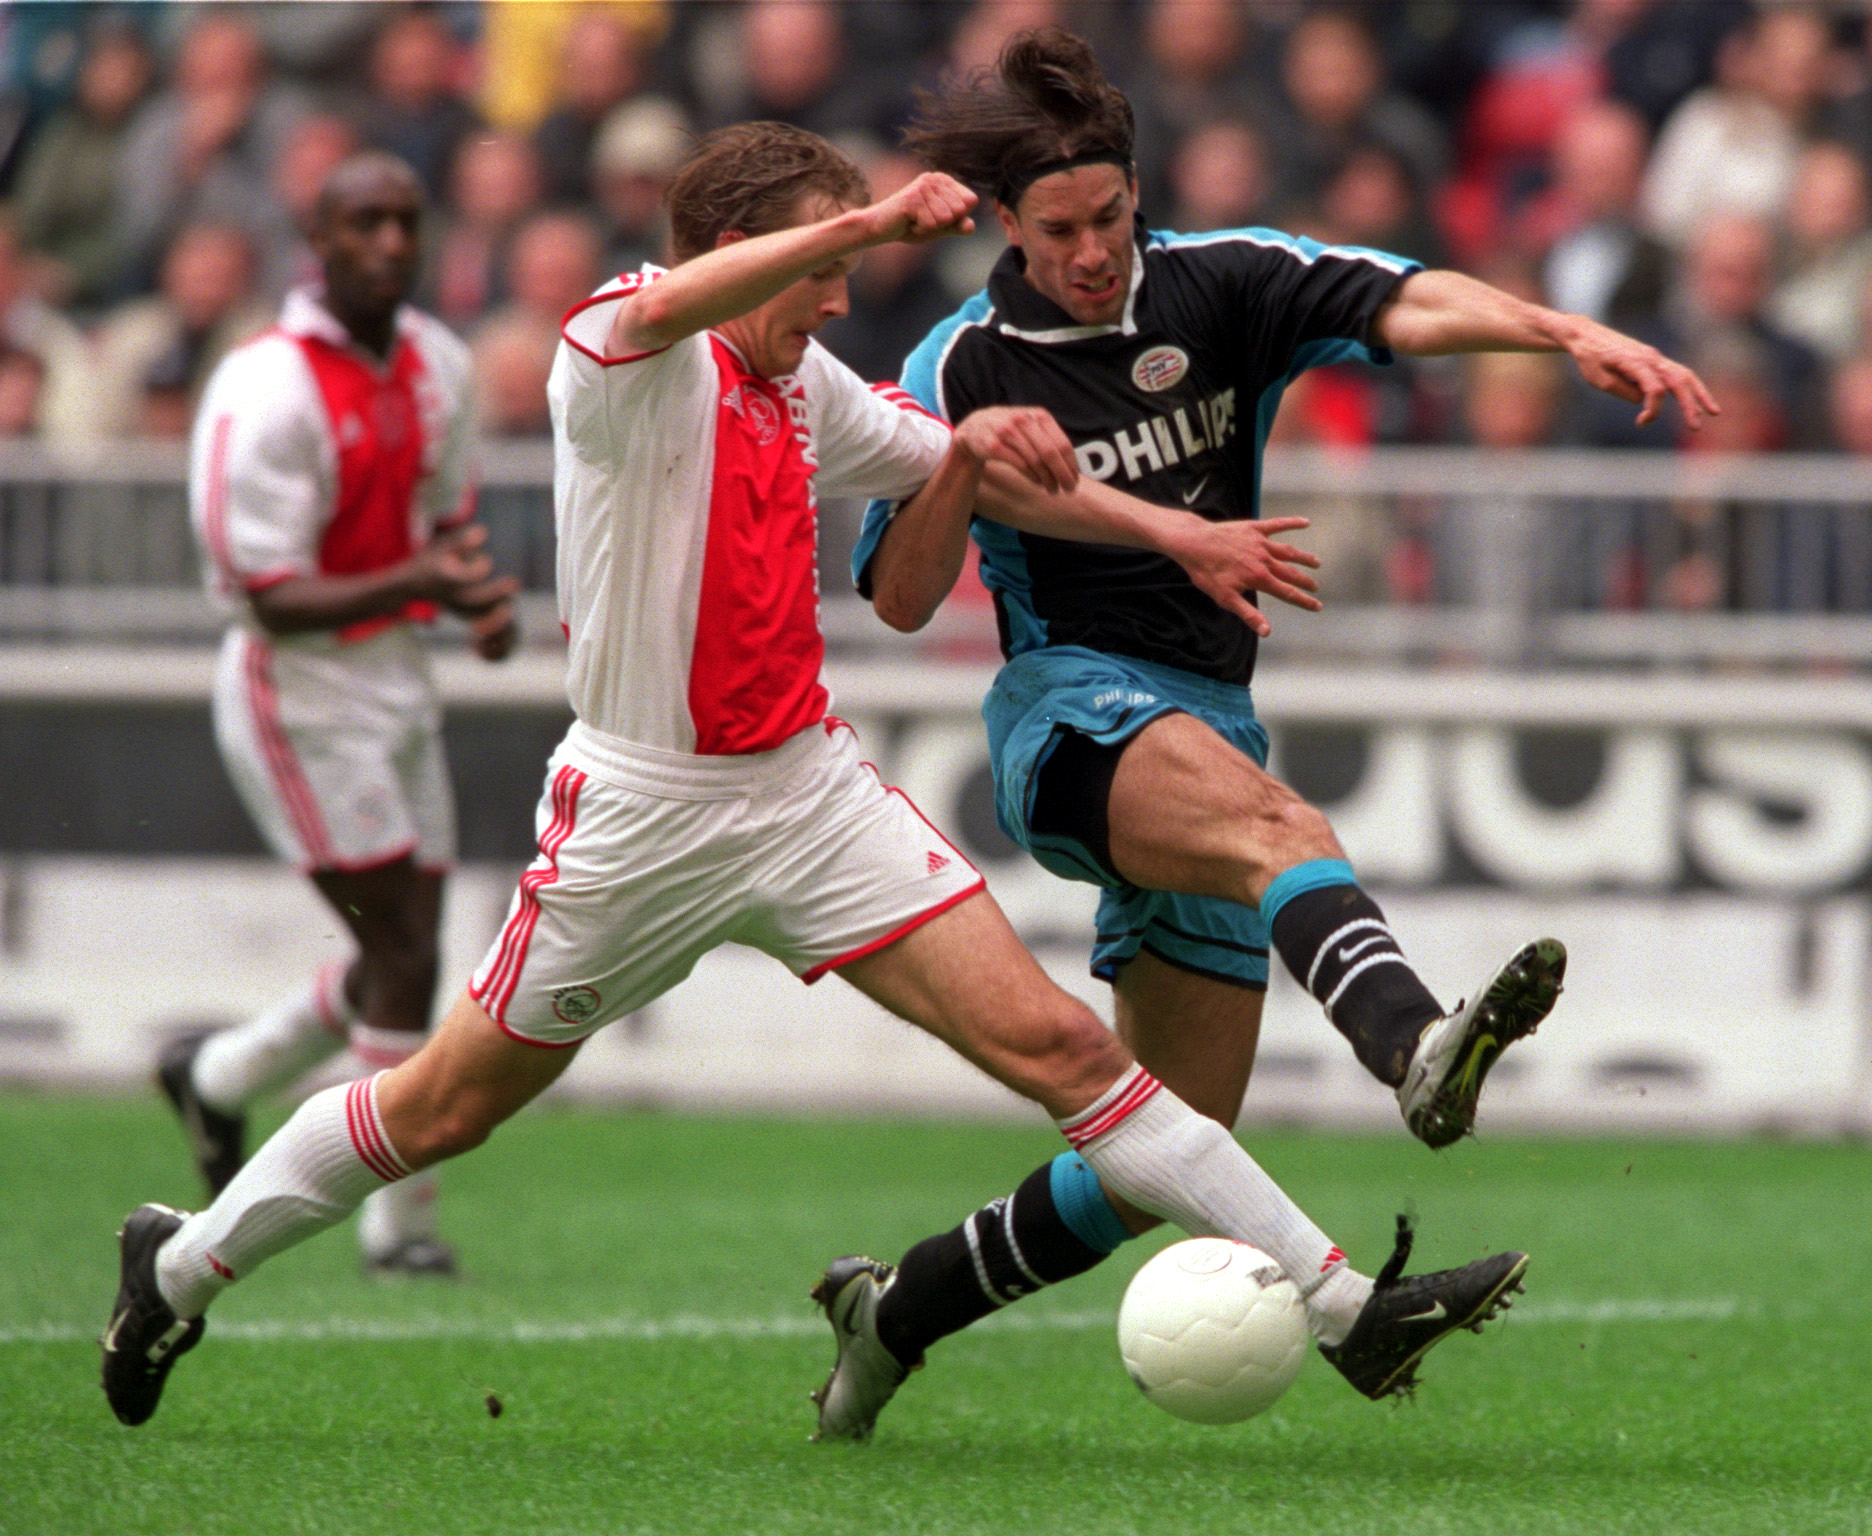 8 April 2001.  Ruud Van Nistelrooy of PSV Eindhoven tussles with Petri Pasanen of Ajax, during the league  match between Ajax and PSV at the Amsterdam Arena, the Netherlands. Mandatory Credit: Craig Prentis/ALLSPORT